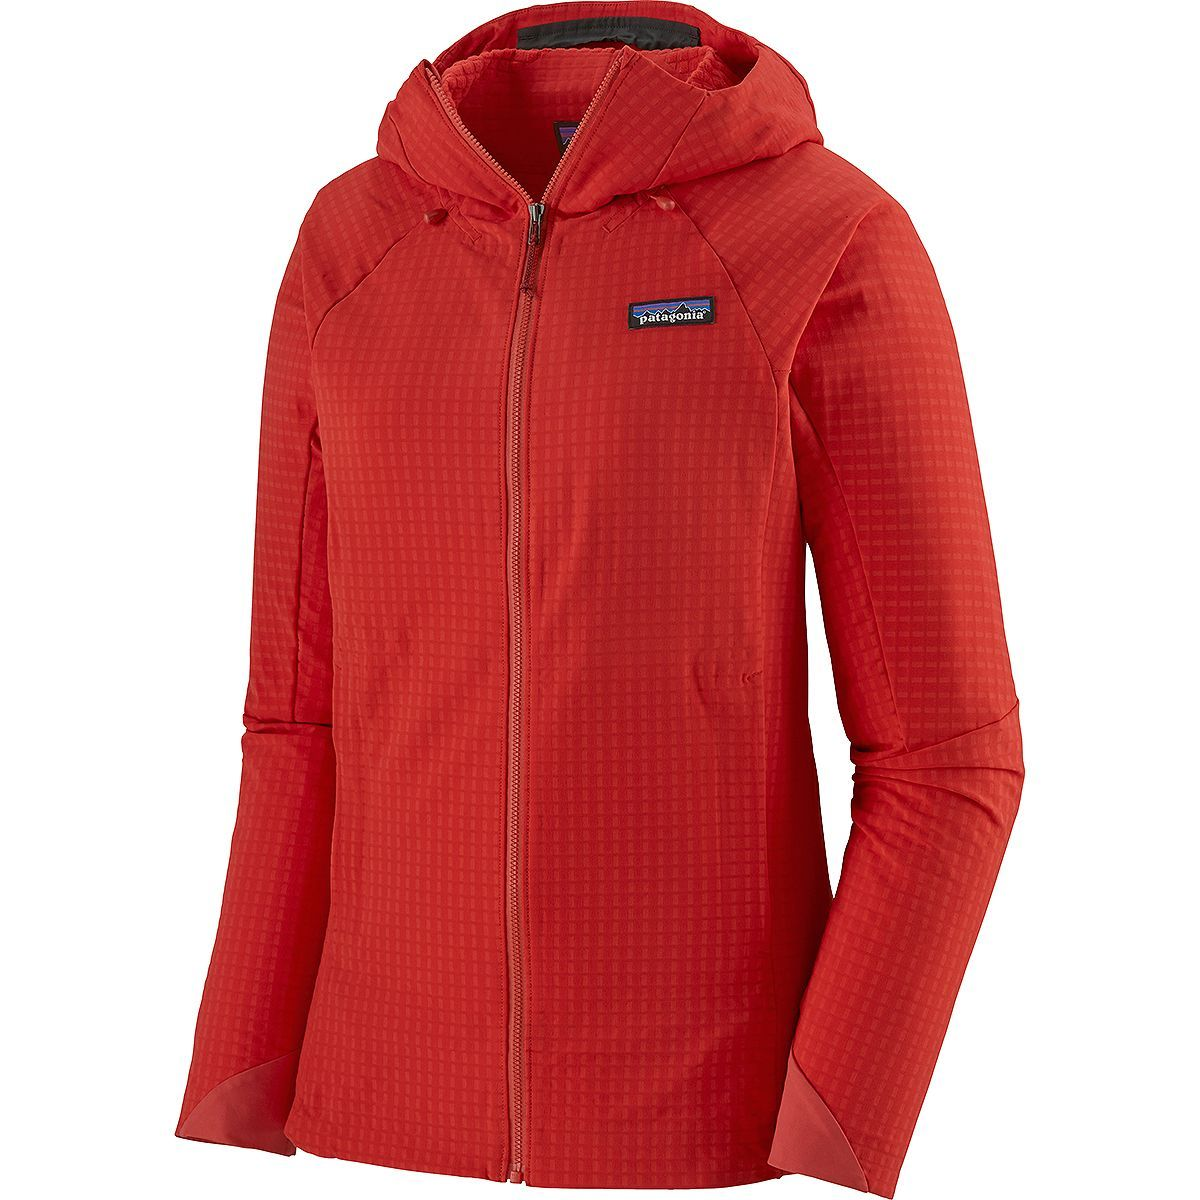 Patagonia R1 Techface Hooded Jacket Women's in 2020